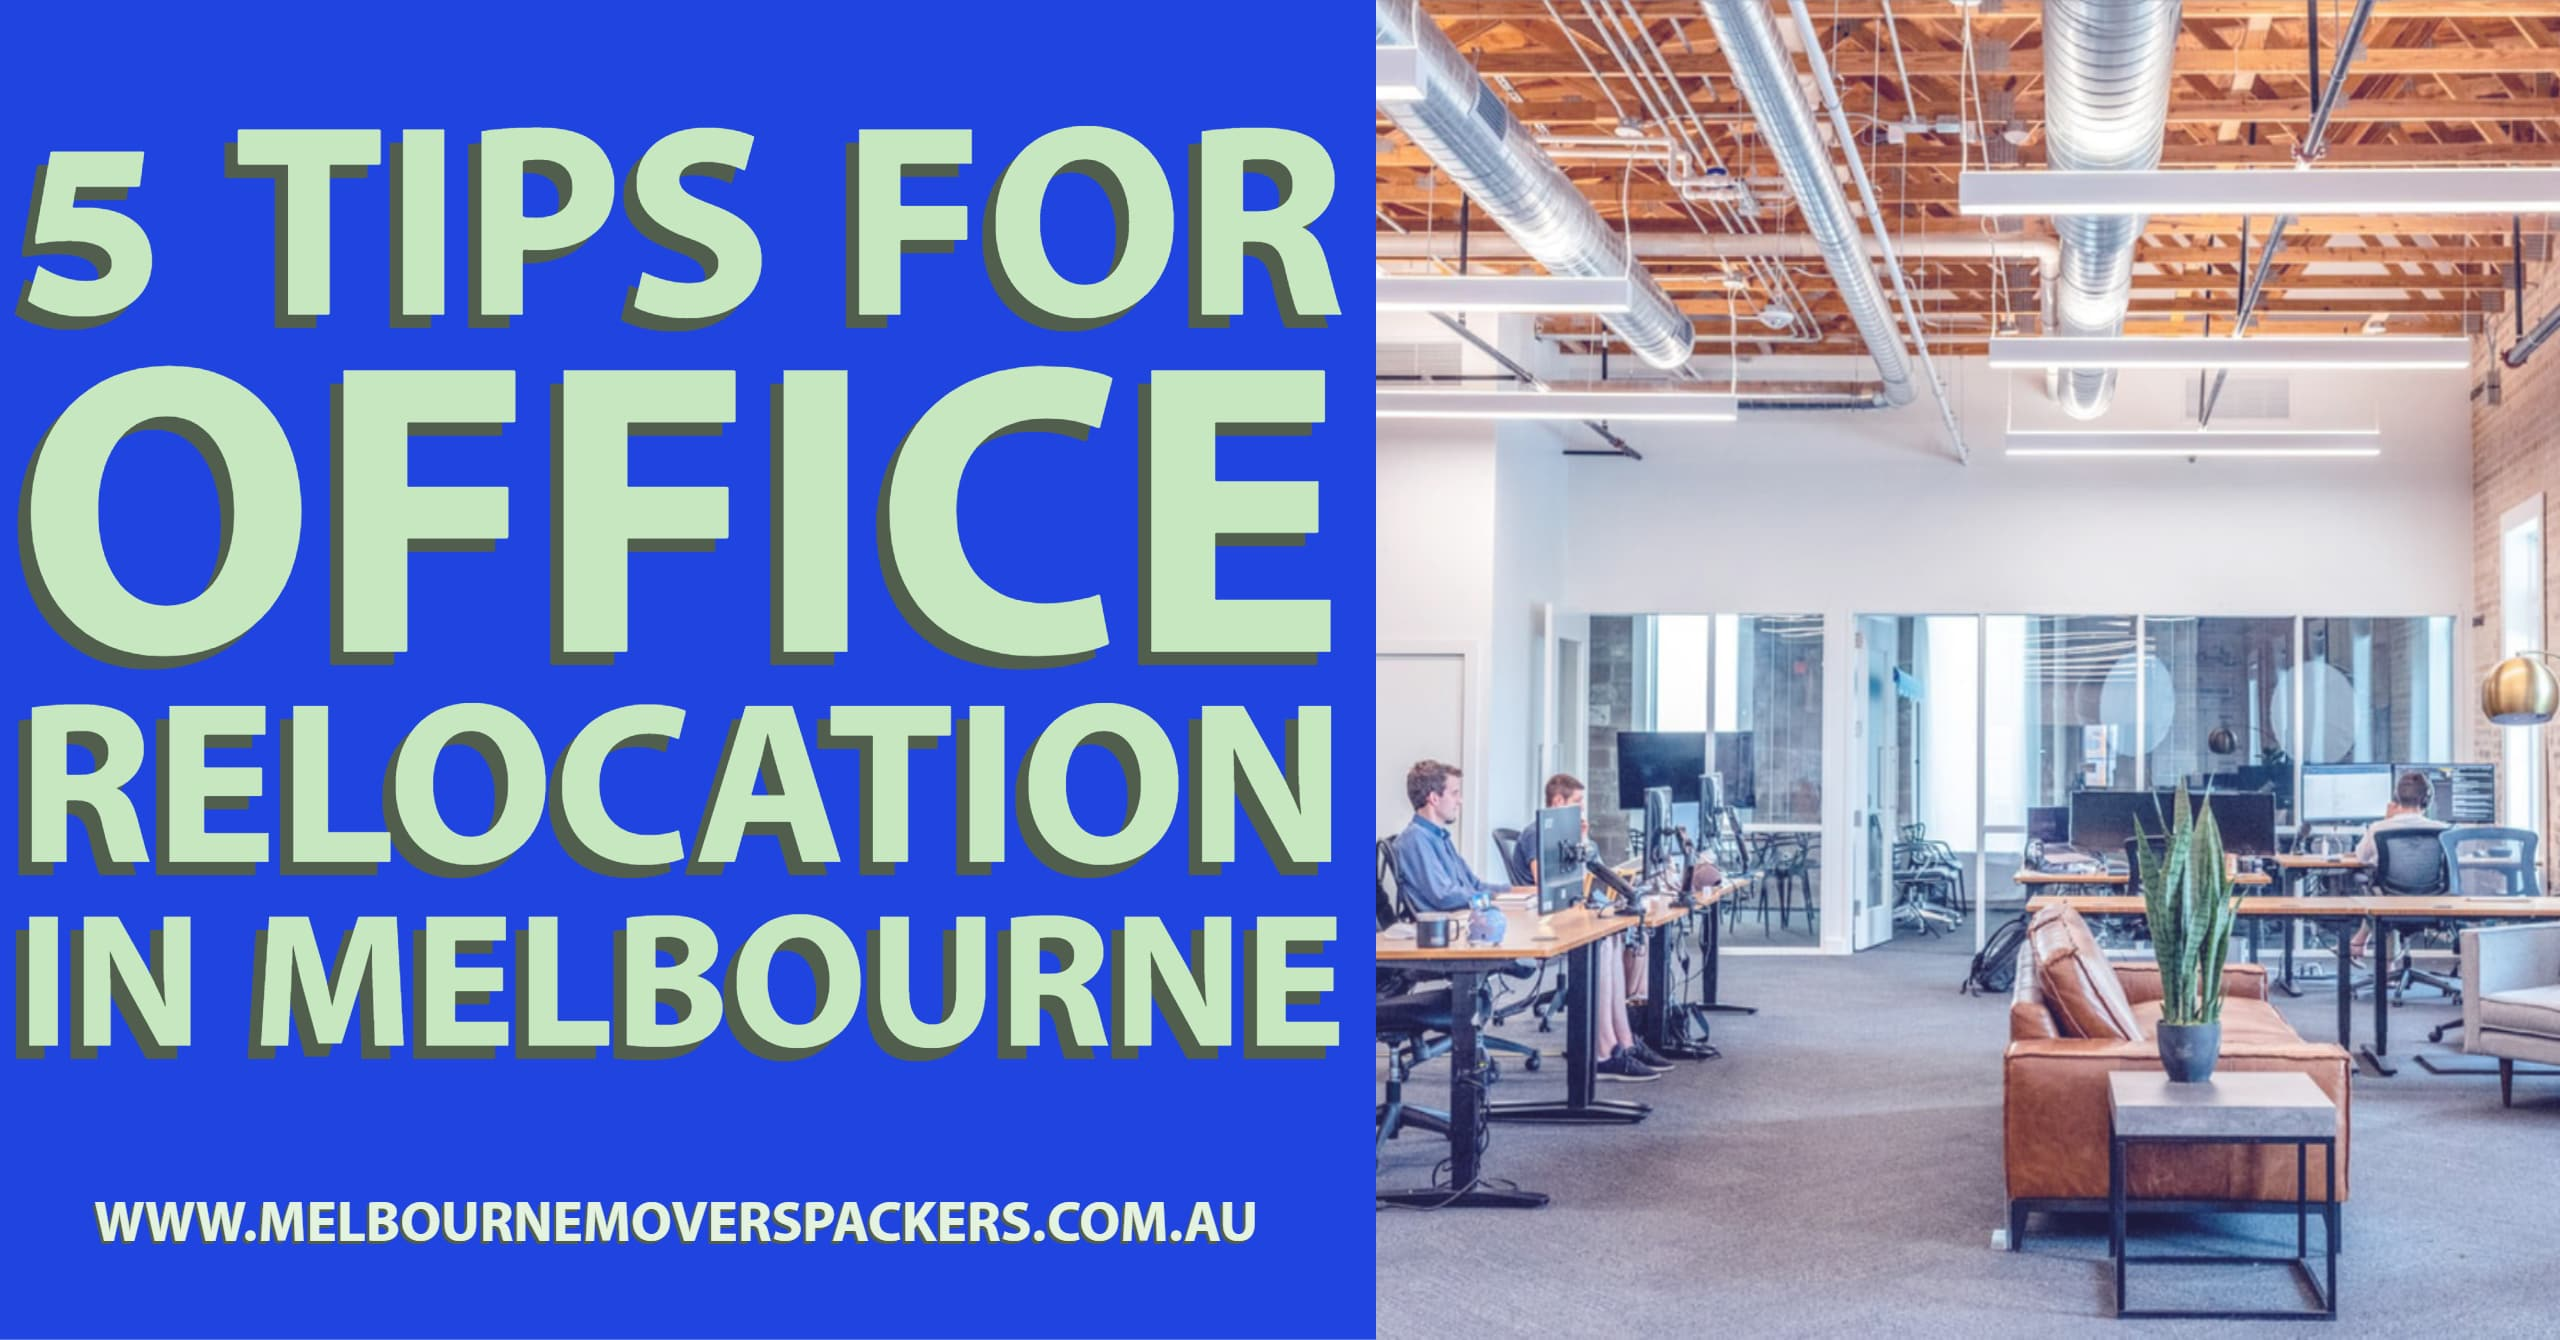 5 Tips for Office Relocation in Melbourne